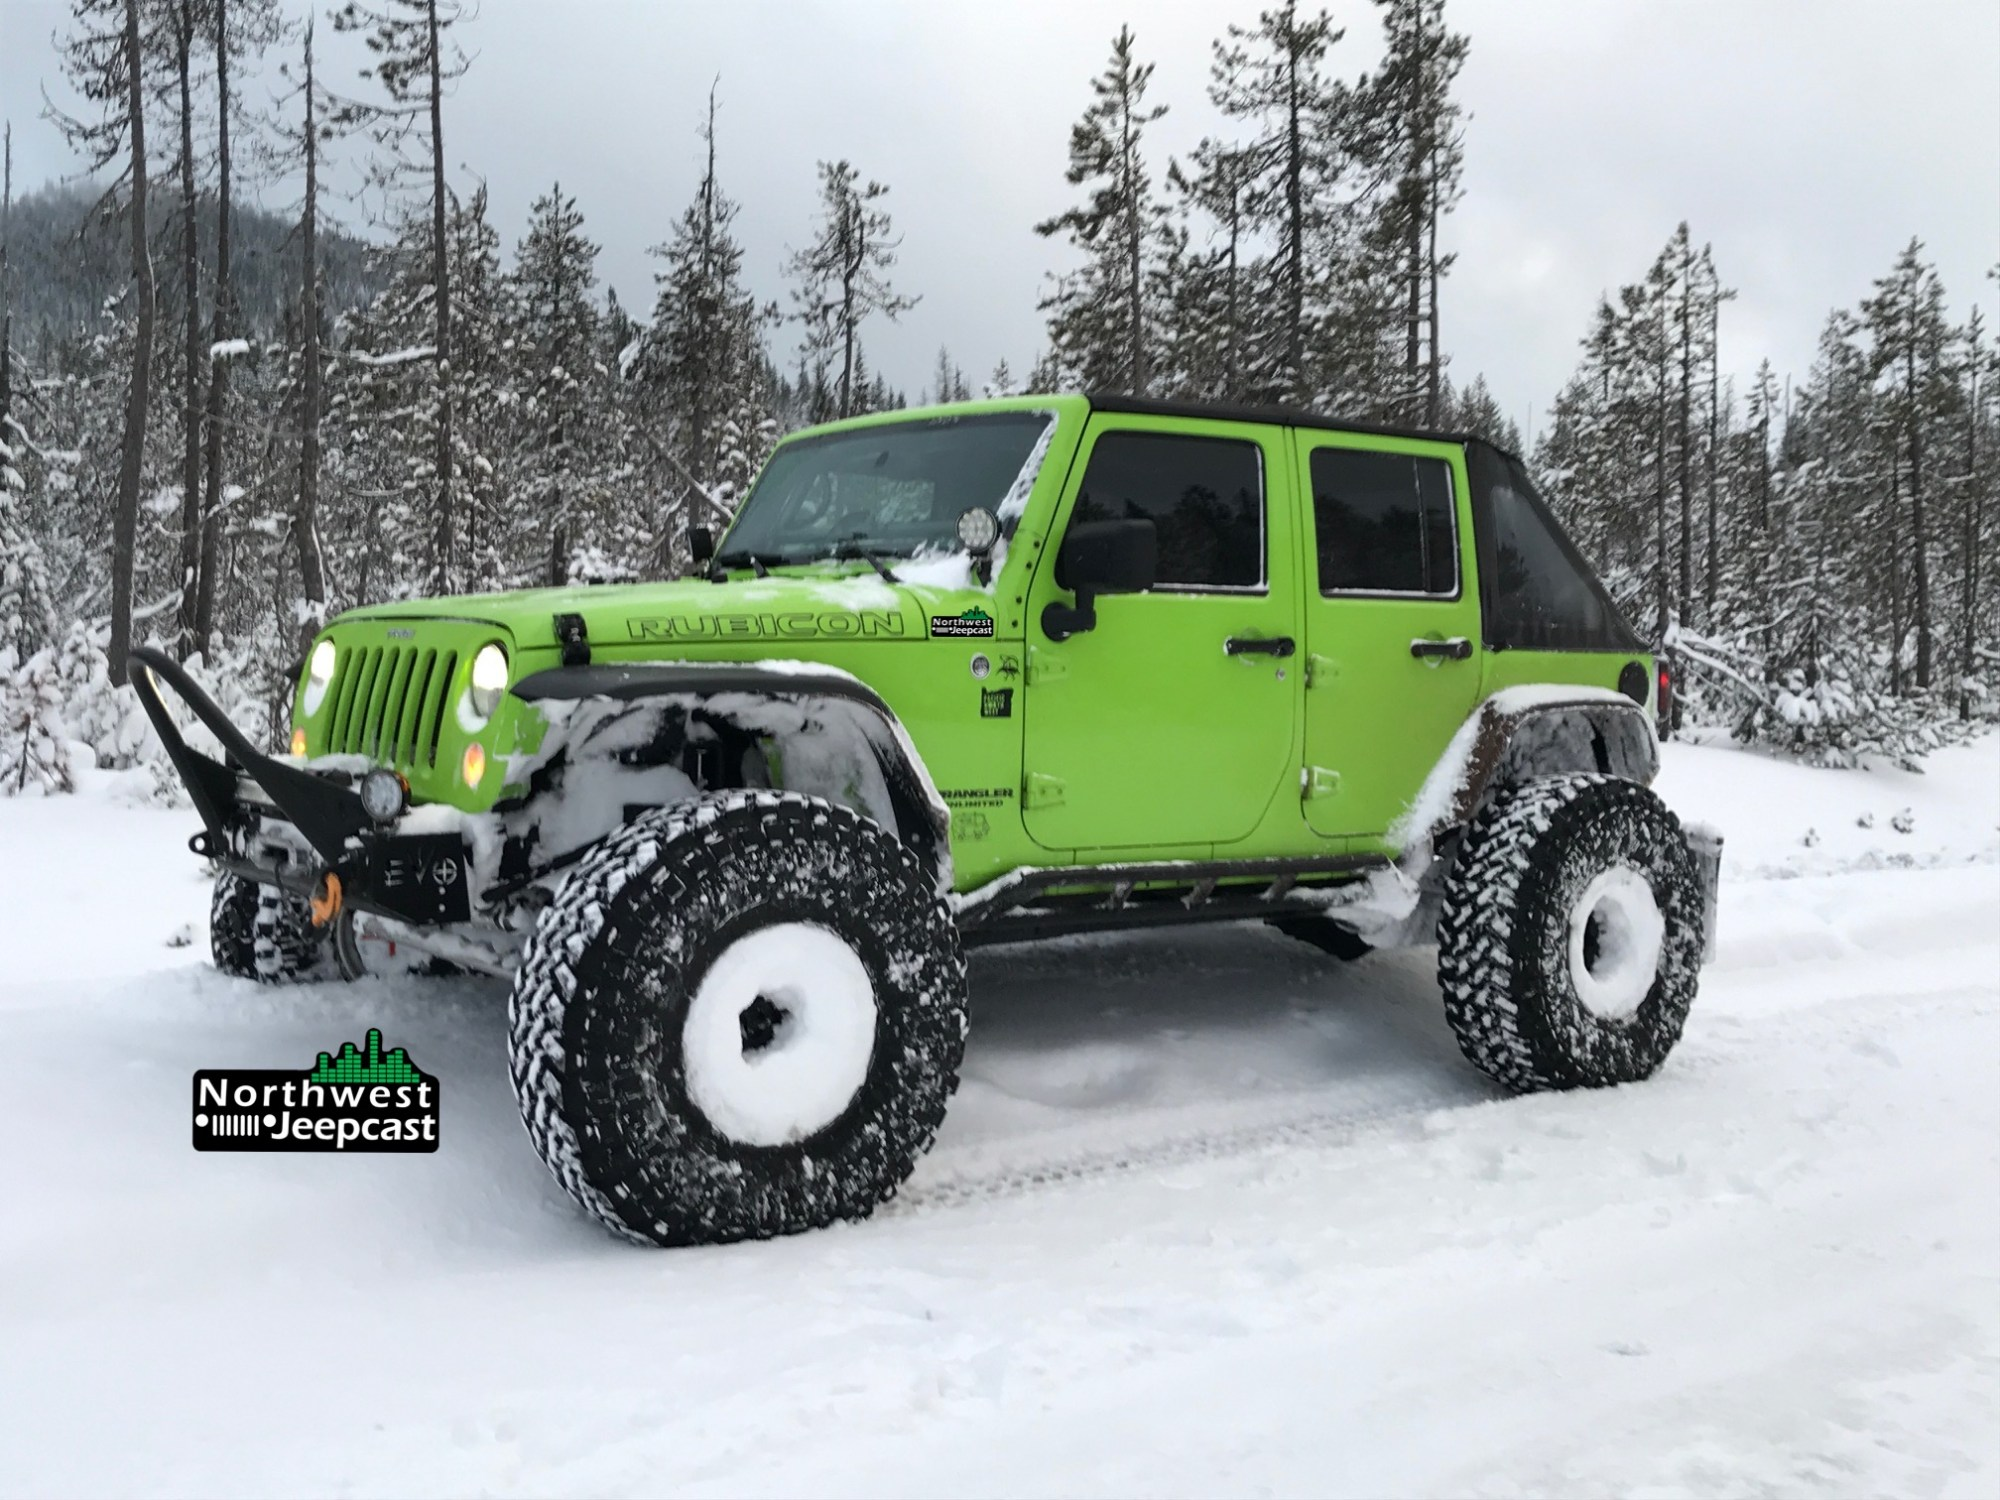 hight resolution of northwest jeepcast a jeep